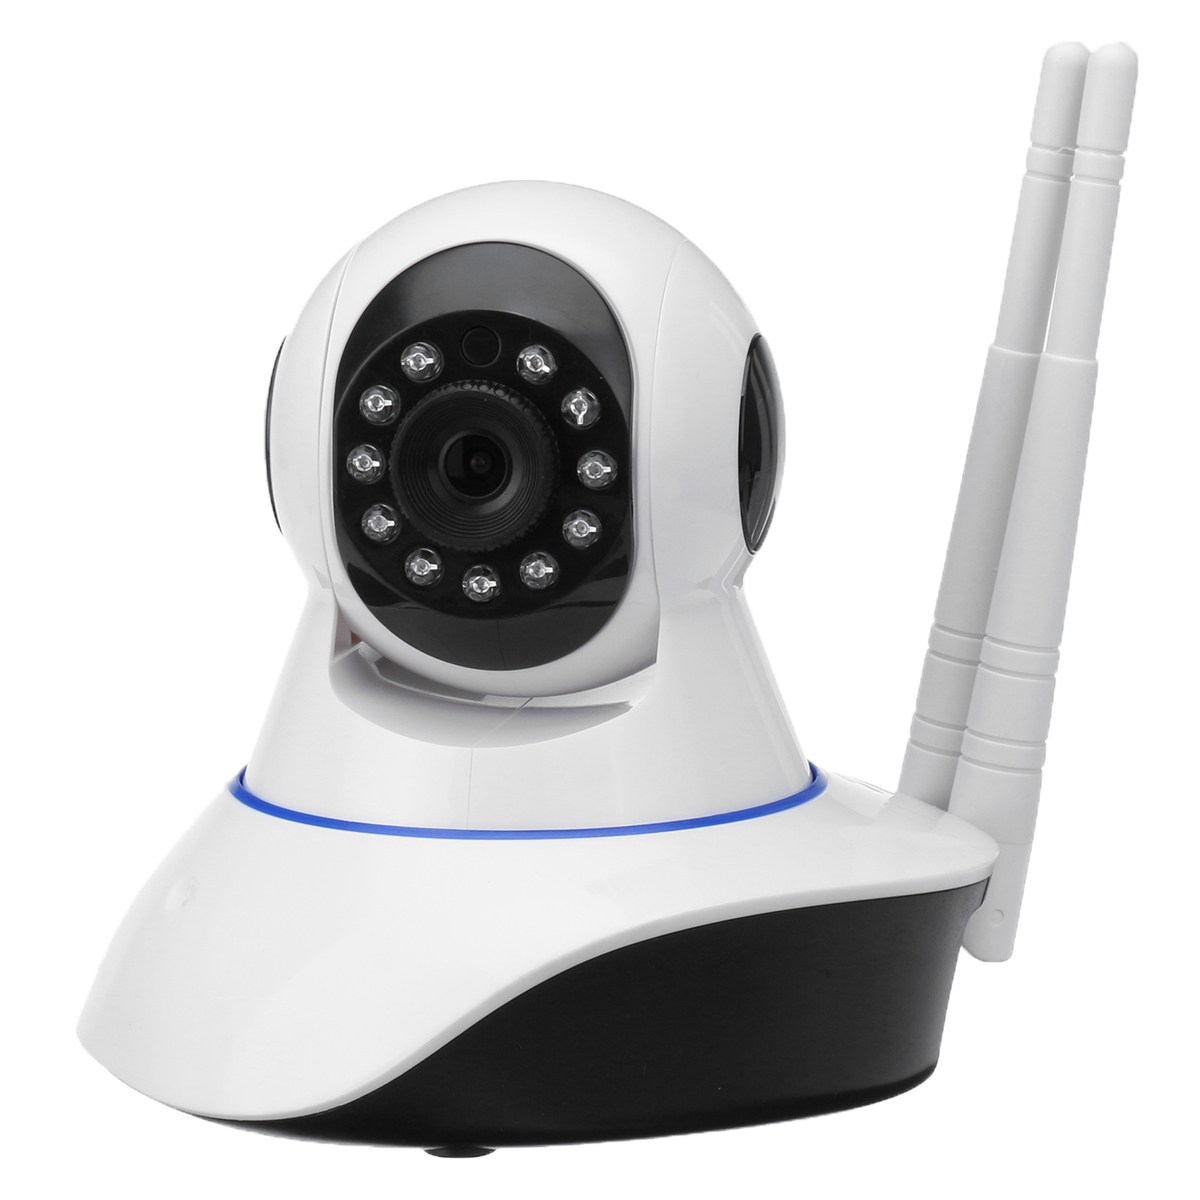 Safurance 720P HD Wireless WiFi IP Home Security Network Camera Baby Monitor CCTV IR Night Vision Safety Surveillance safurance 720p hd wireless wifi ip camera home security cctv system baby monitor safety surveillance